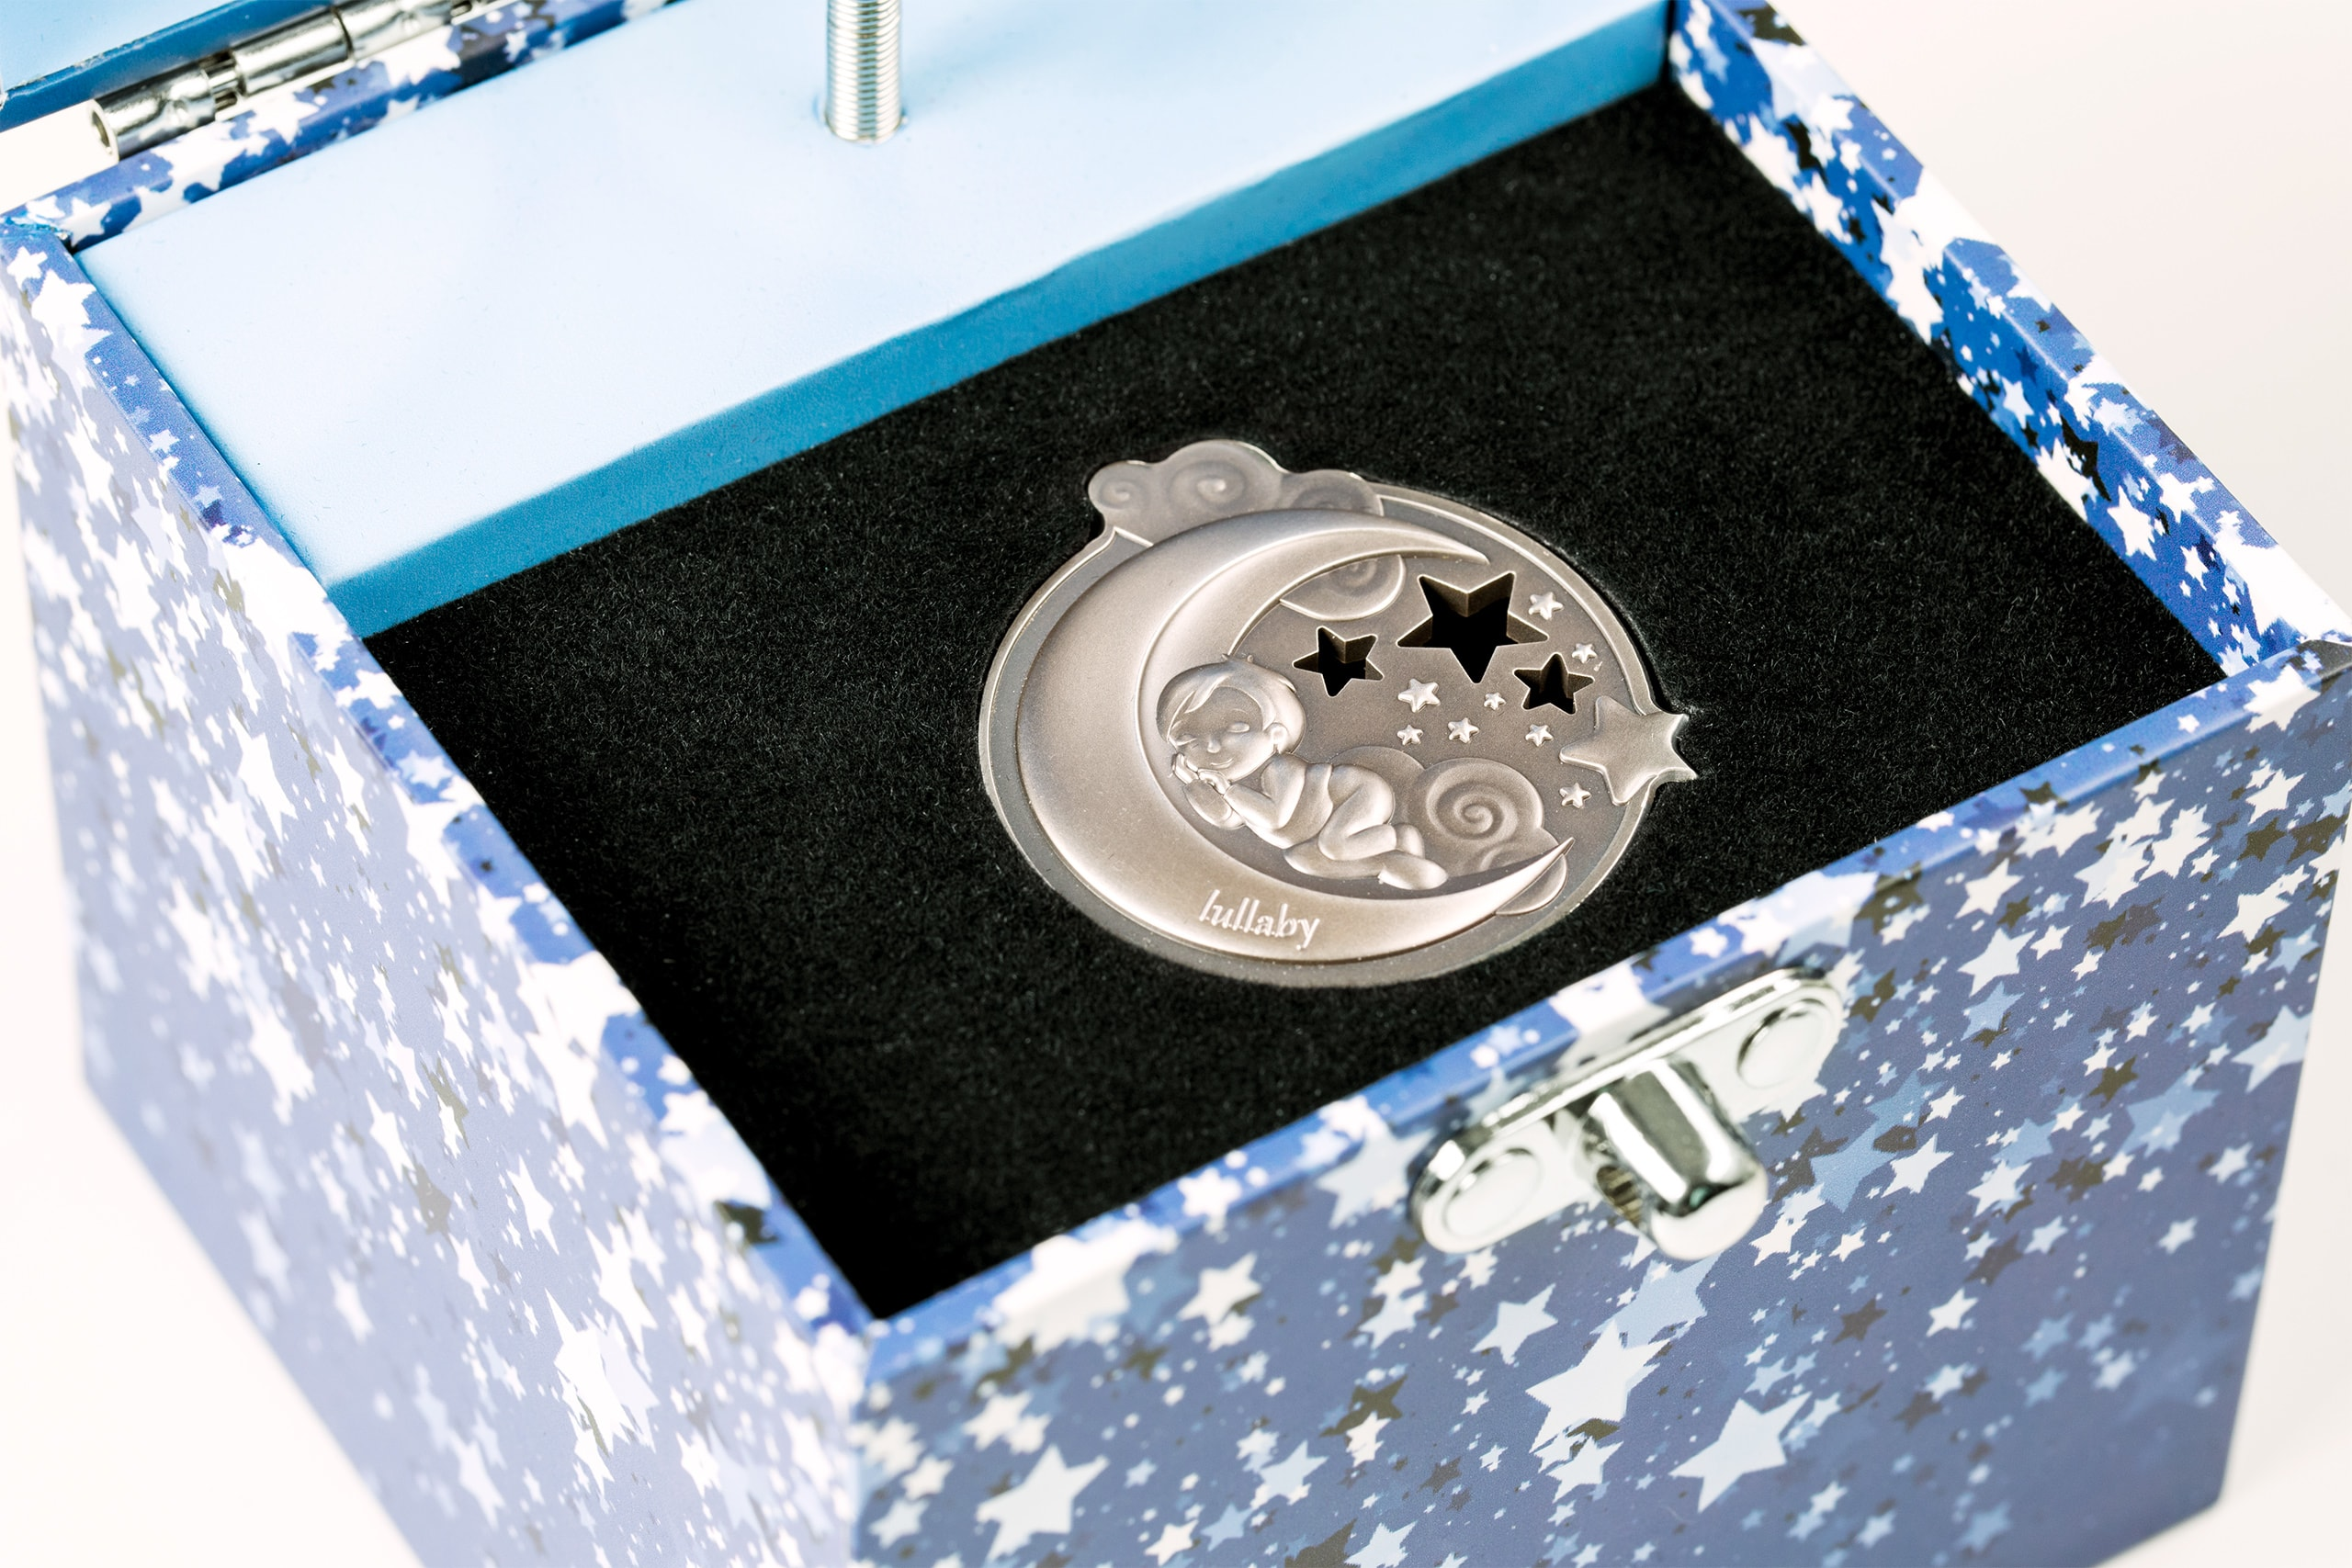 Dreaming Boy 1oz .999 Silver Antique Finish Coin 2018 $5 Cook Islands Lullaby